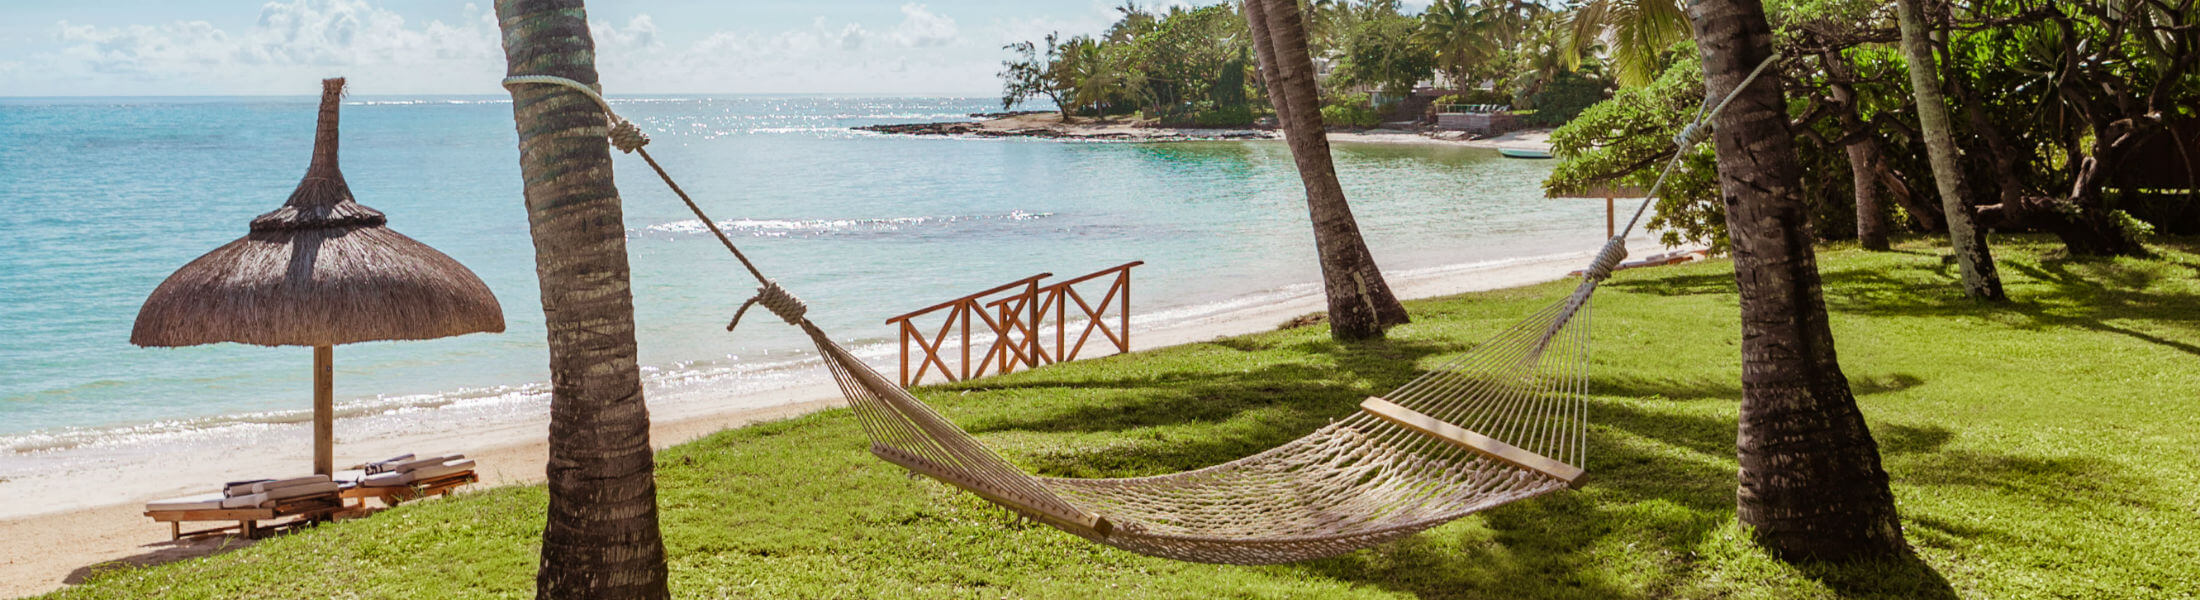 One&Only Le Saint Geran, Mauritius - beach with hammock